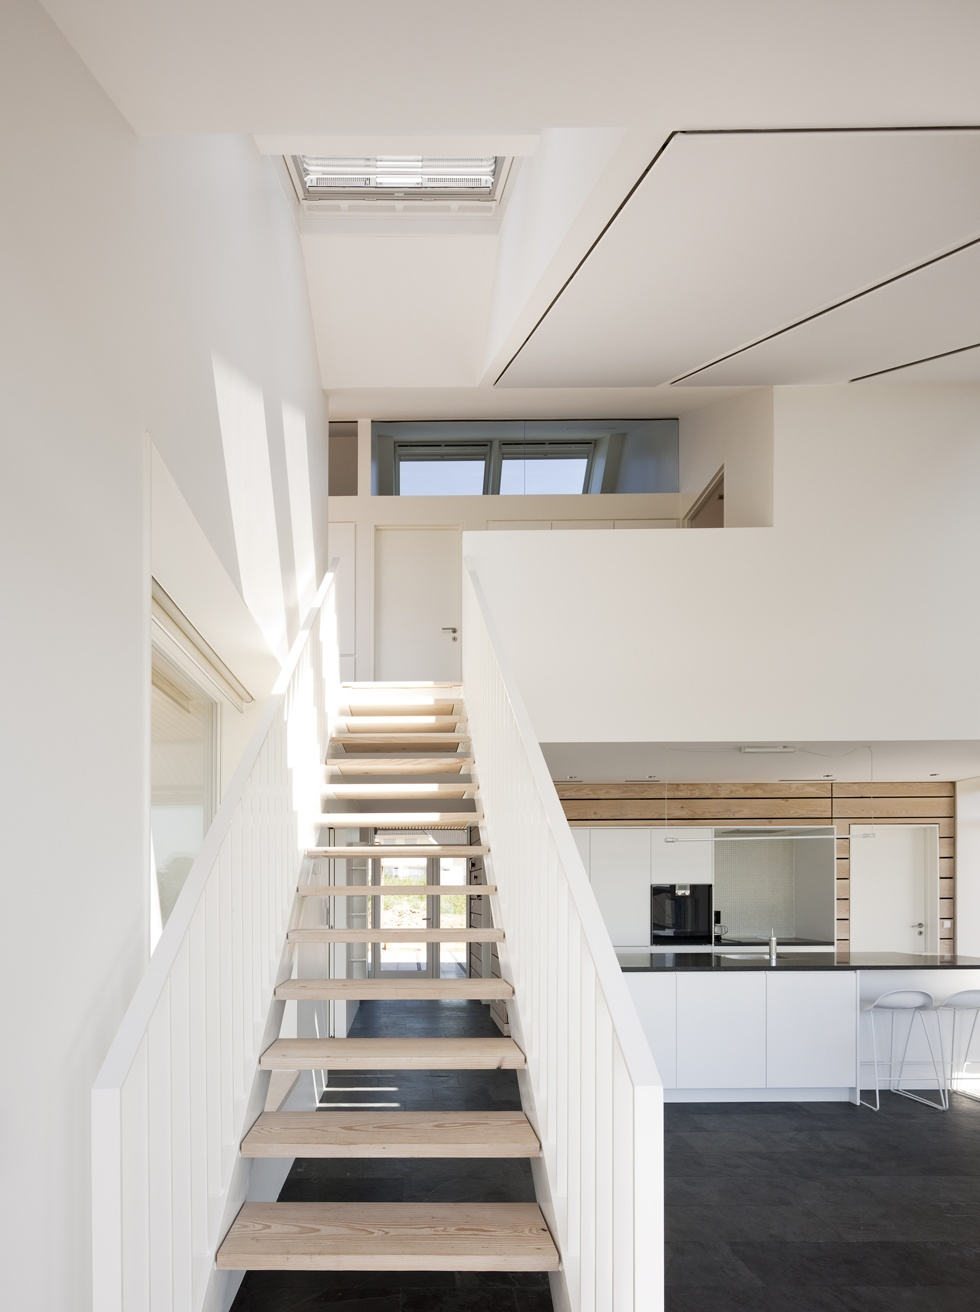 Home For Life: The First Active House In The World: Awesome Home For Life Stairs Design With Wooden Flooring Ideas